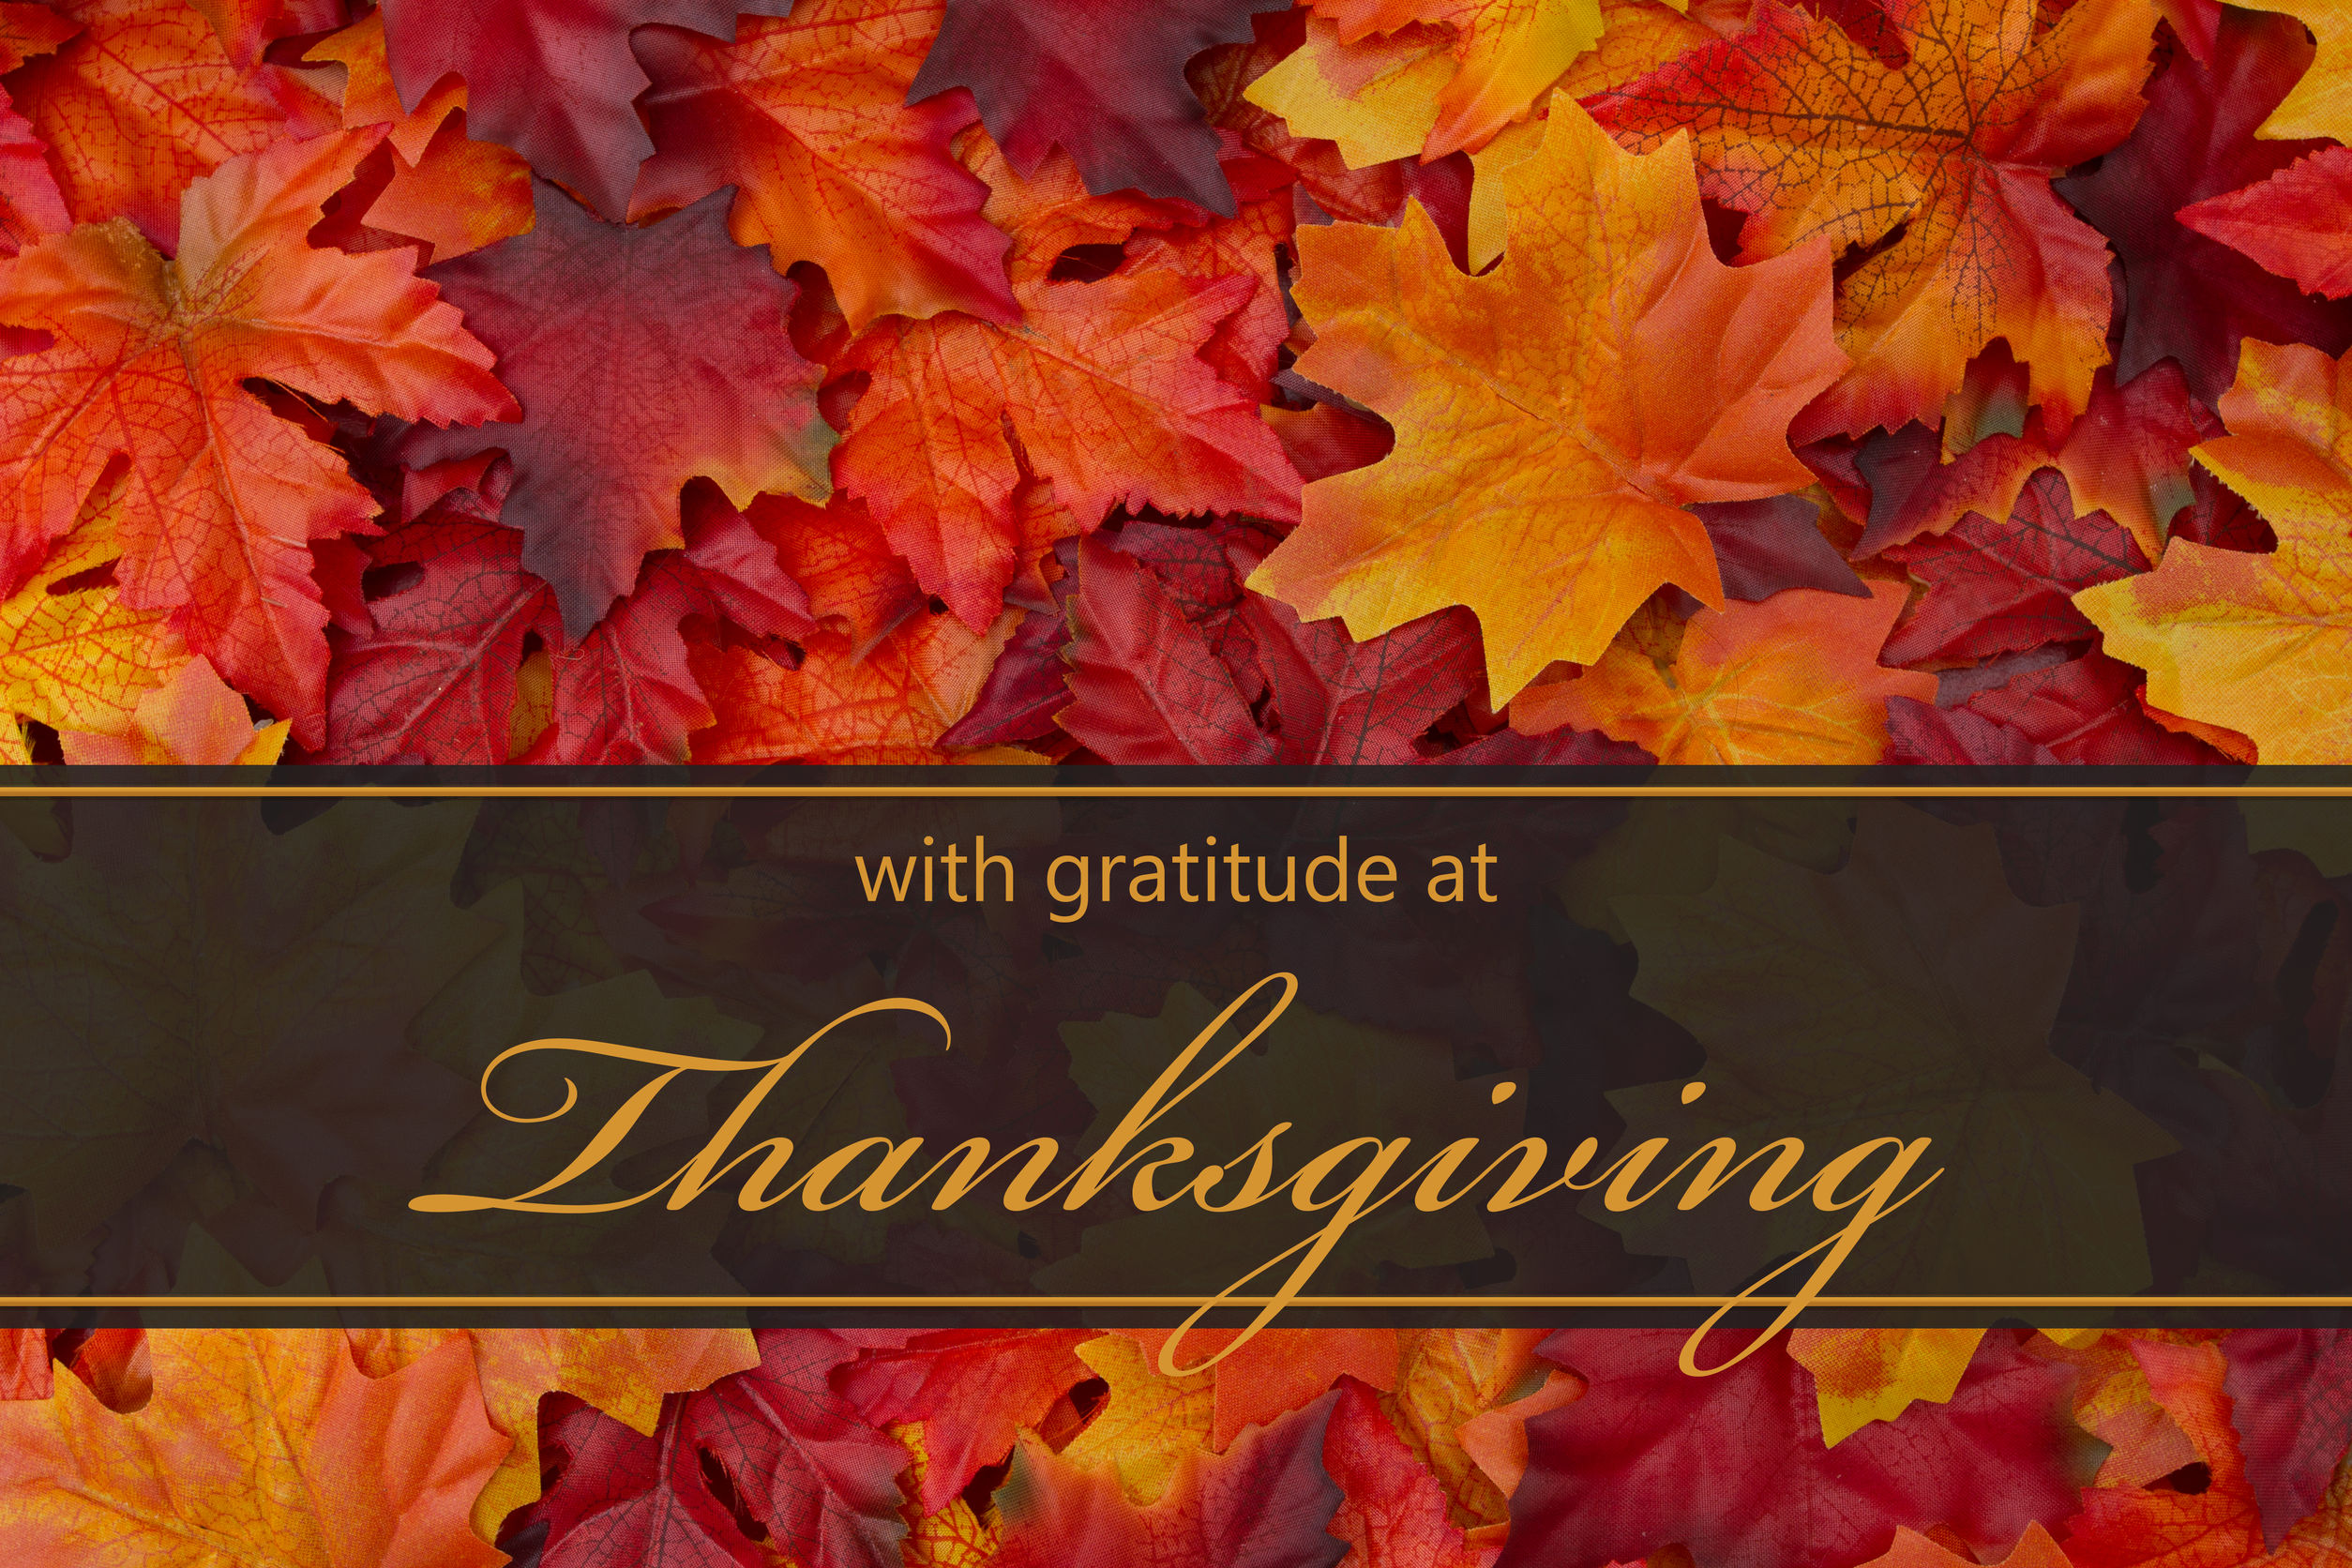 Tech Service Today offers this message of gratitude to our team members, technicians, customers, and their families. We are incredibly thankful to each of you for everything you do, and want you to know that we are here for you whenever you need us. Wishing everyone a happy and safe Thanksgiving. TST provides on-site IT technicians  to business locations across North America.